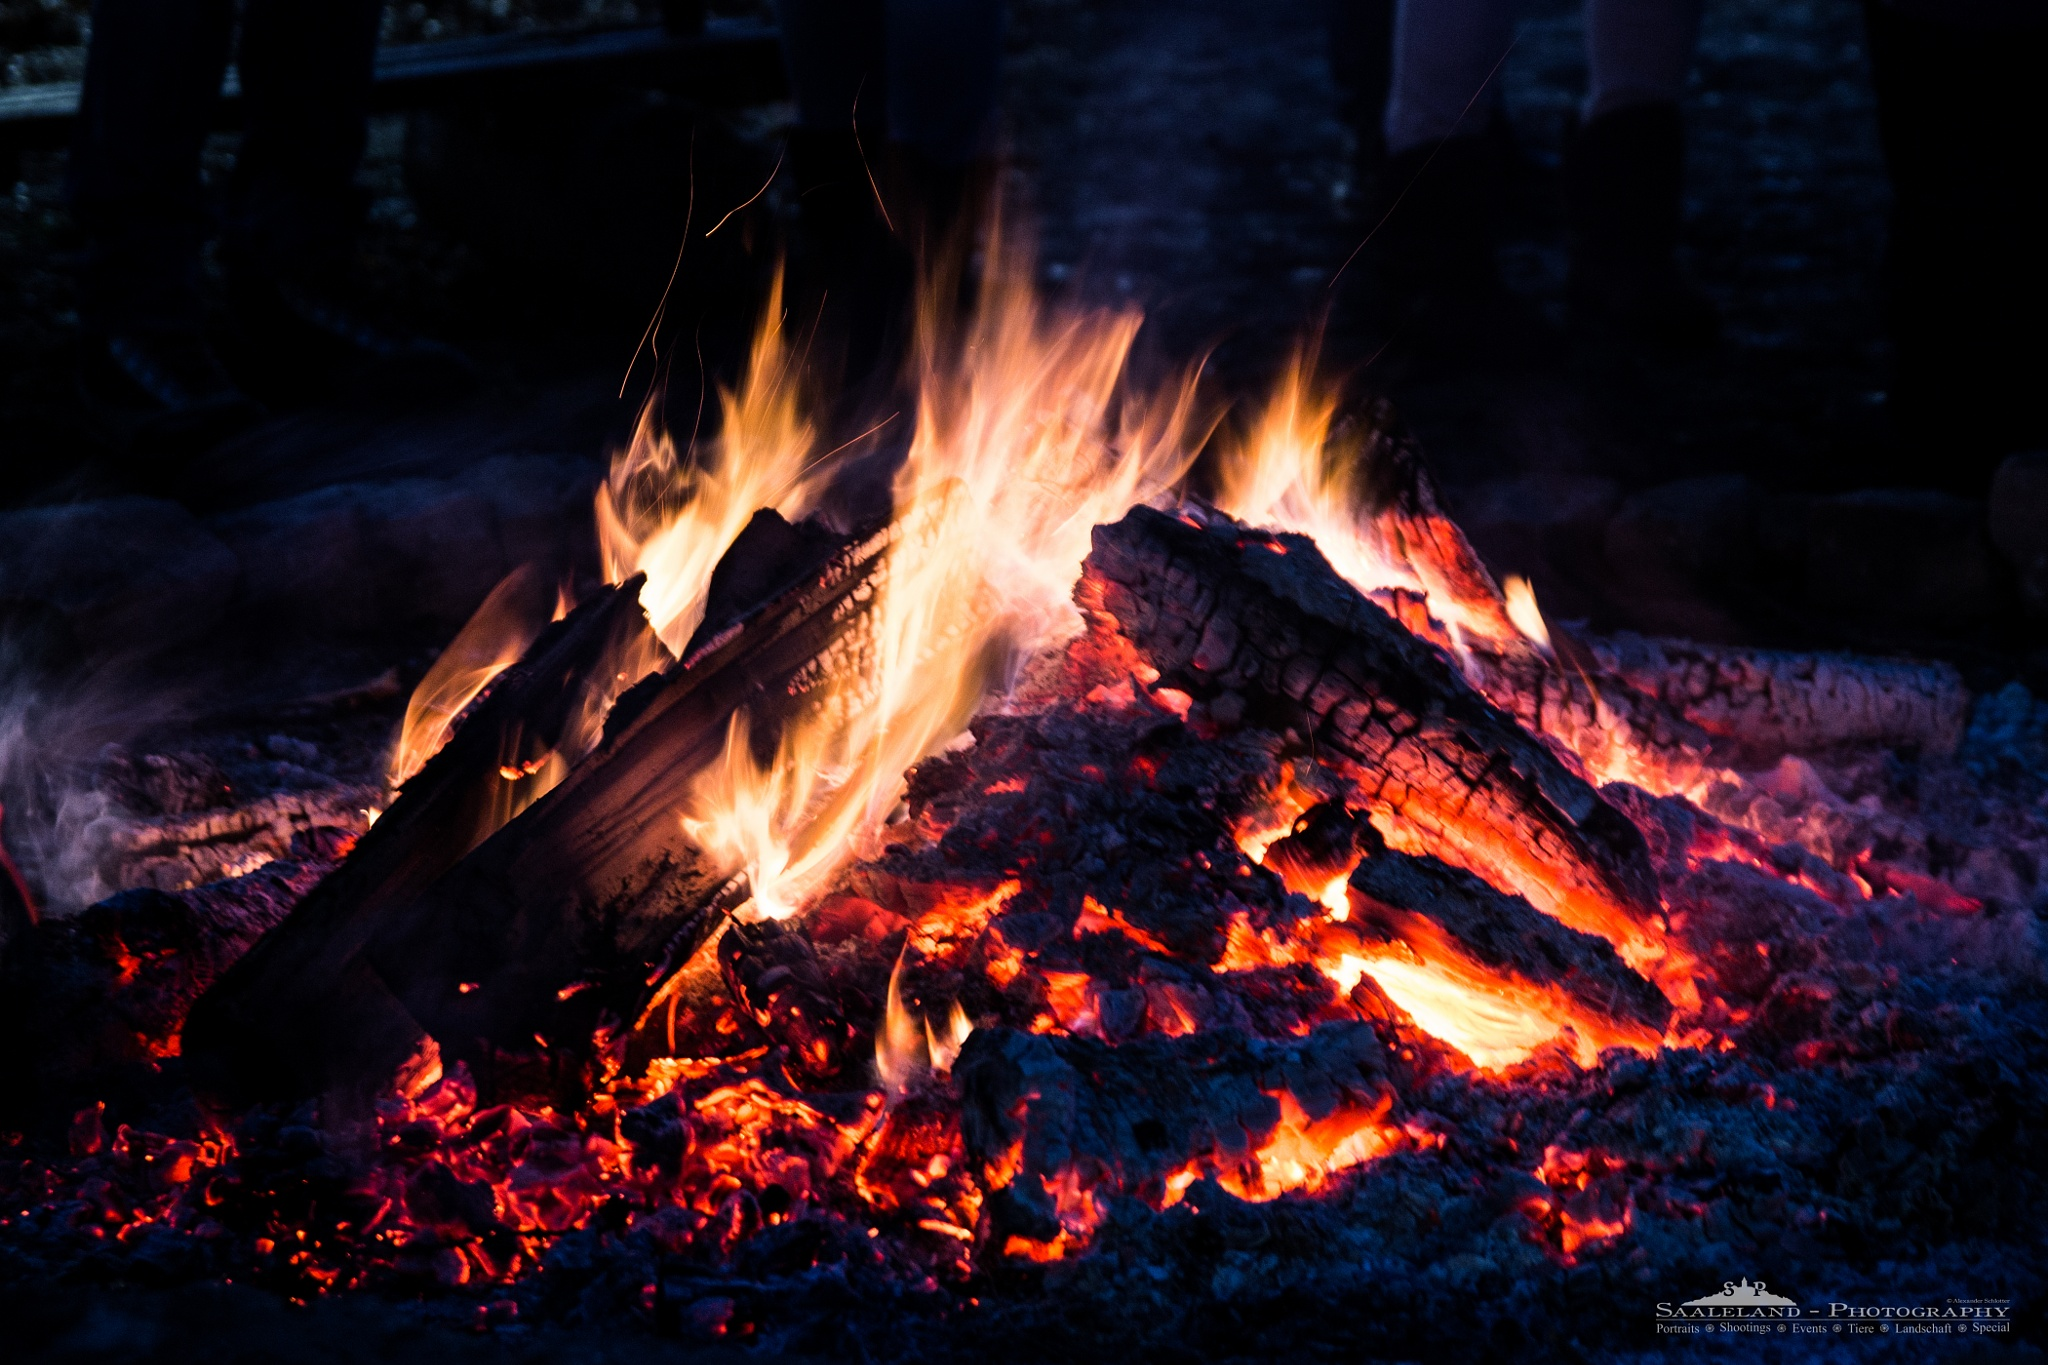 Campfire at the christmas market. by Alexander Schlotter